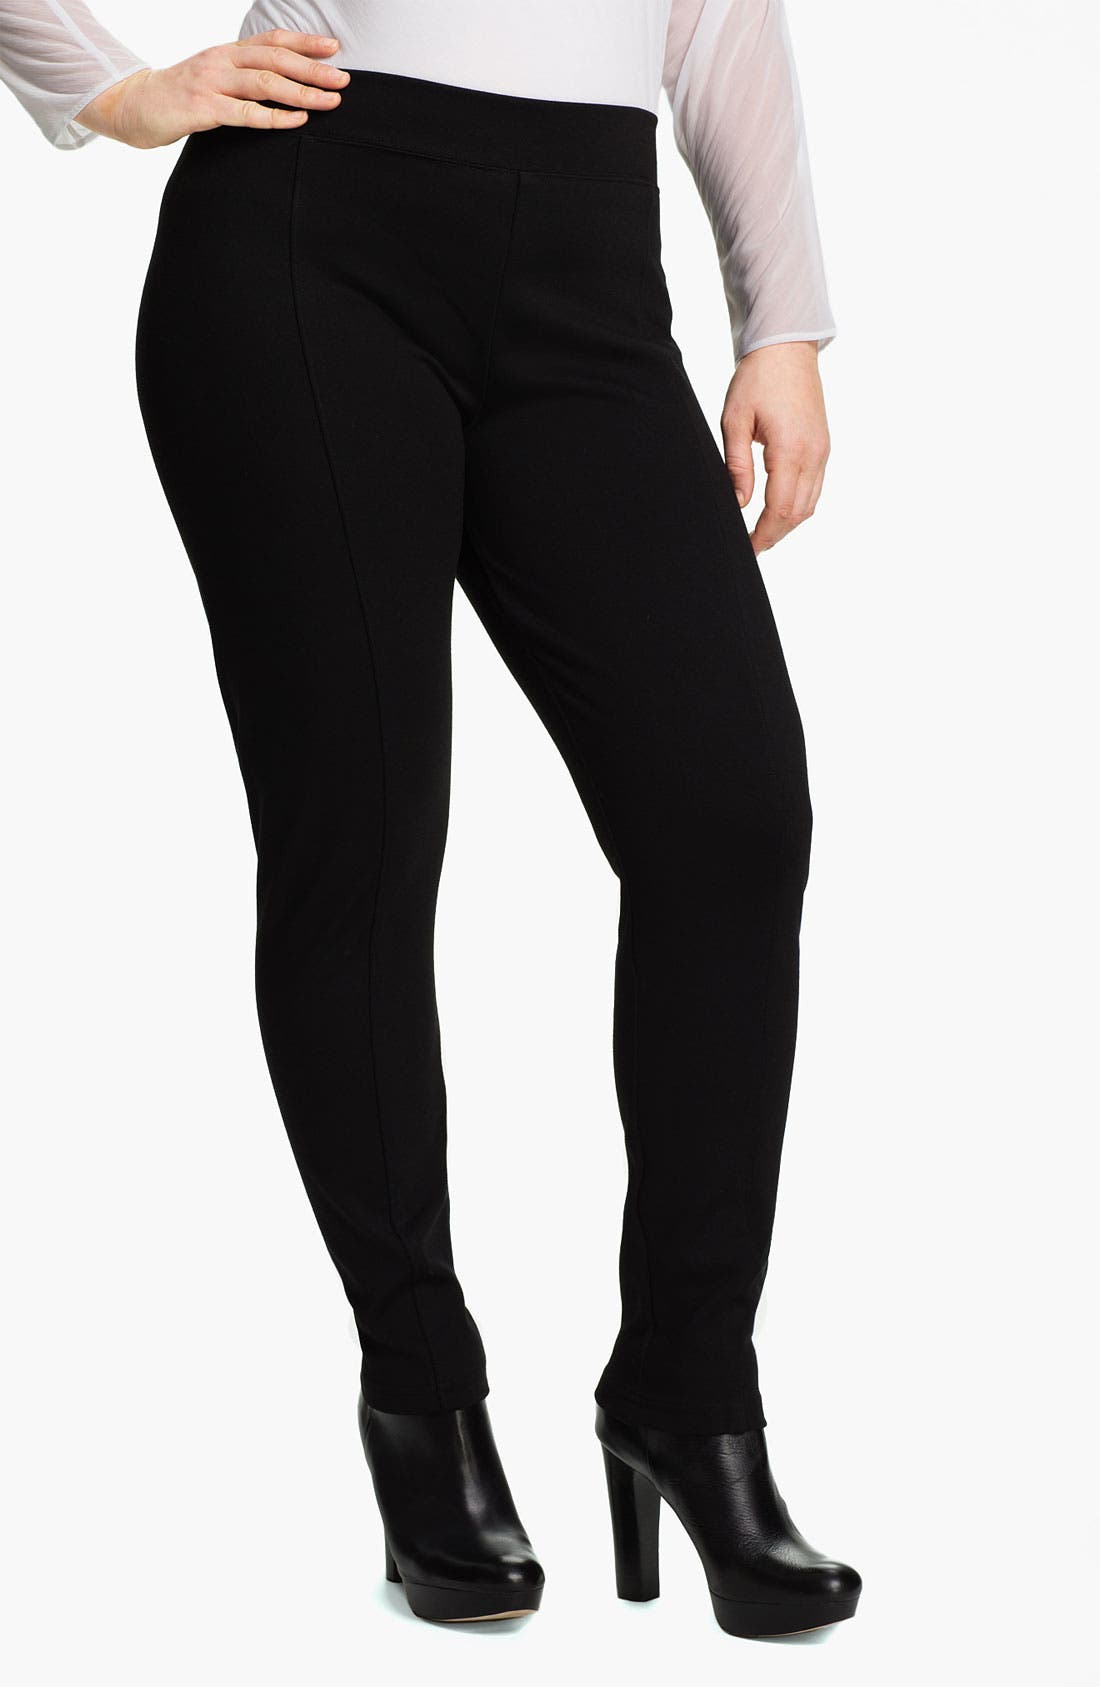 Alternate Image 1 Selected - Out of Ashes Skinny Leggings (Plus)